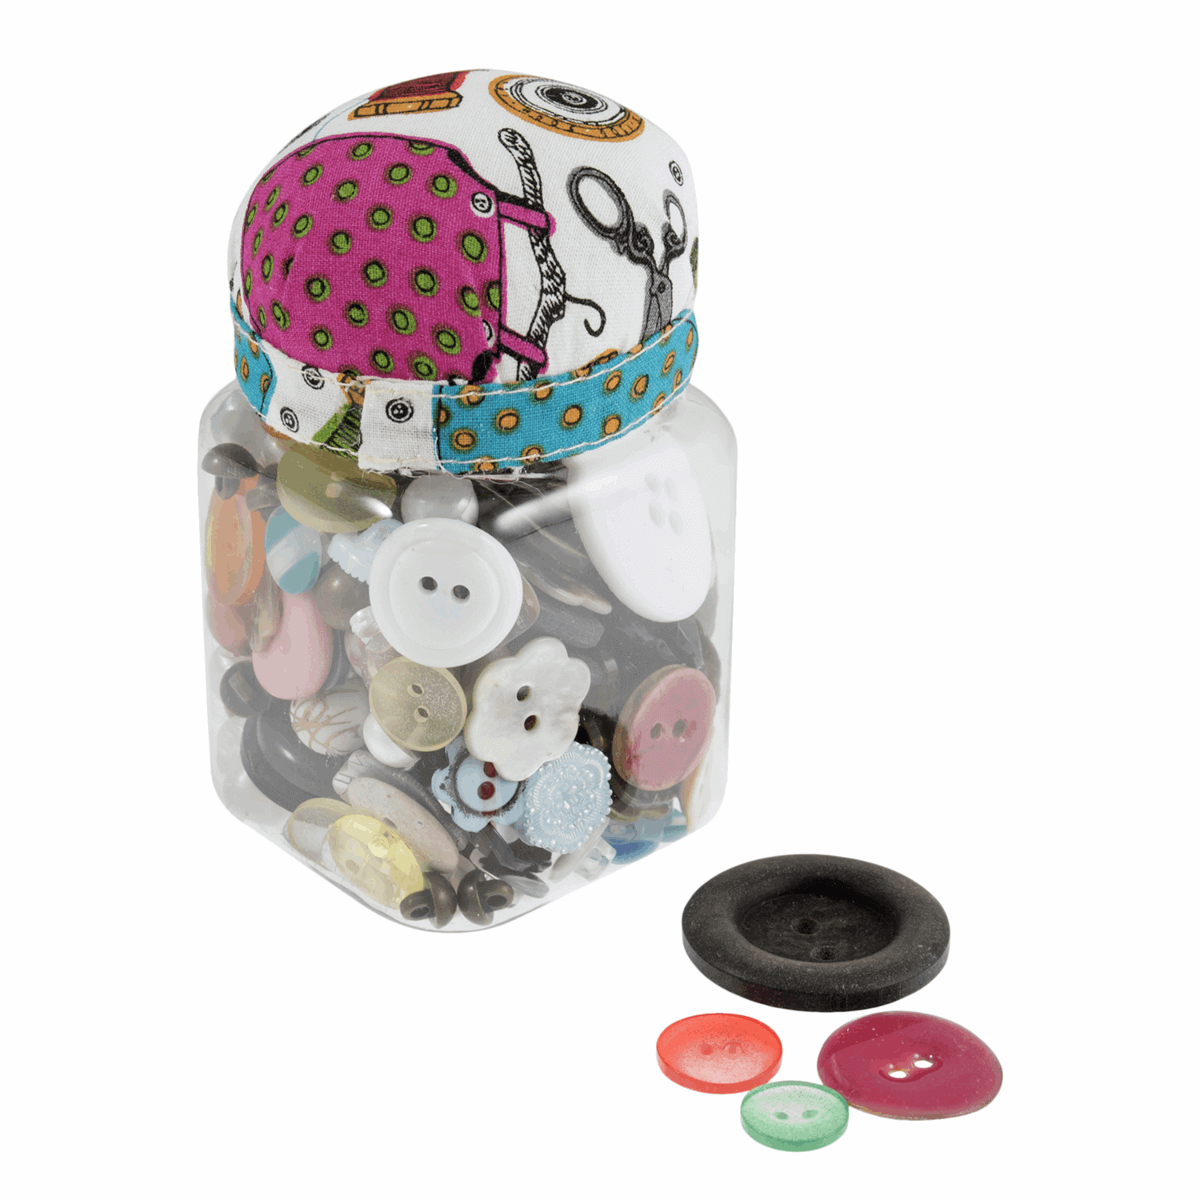 Buttons in a Jar With Pin Cushion. Great Sewing Pincushion Gift.